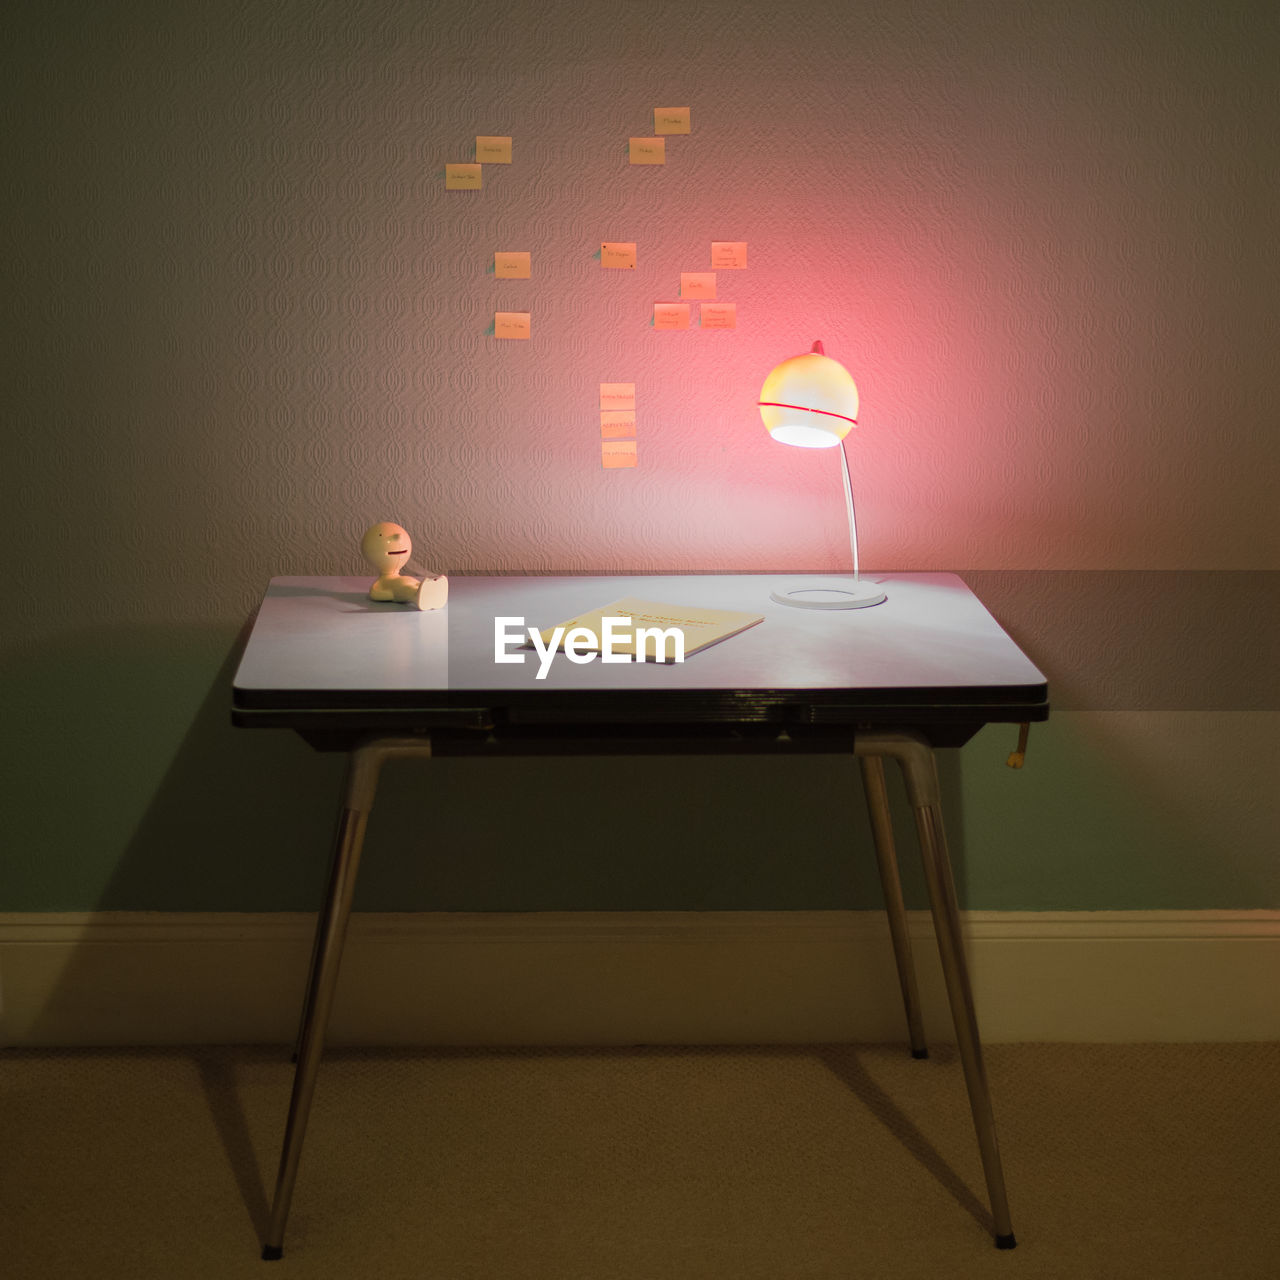 Table With Lamp And Adhesive Notes On Wall